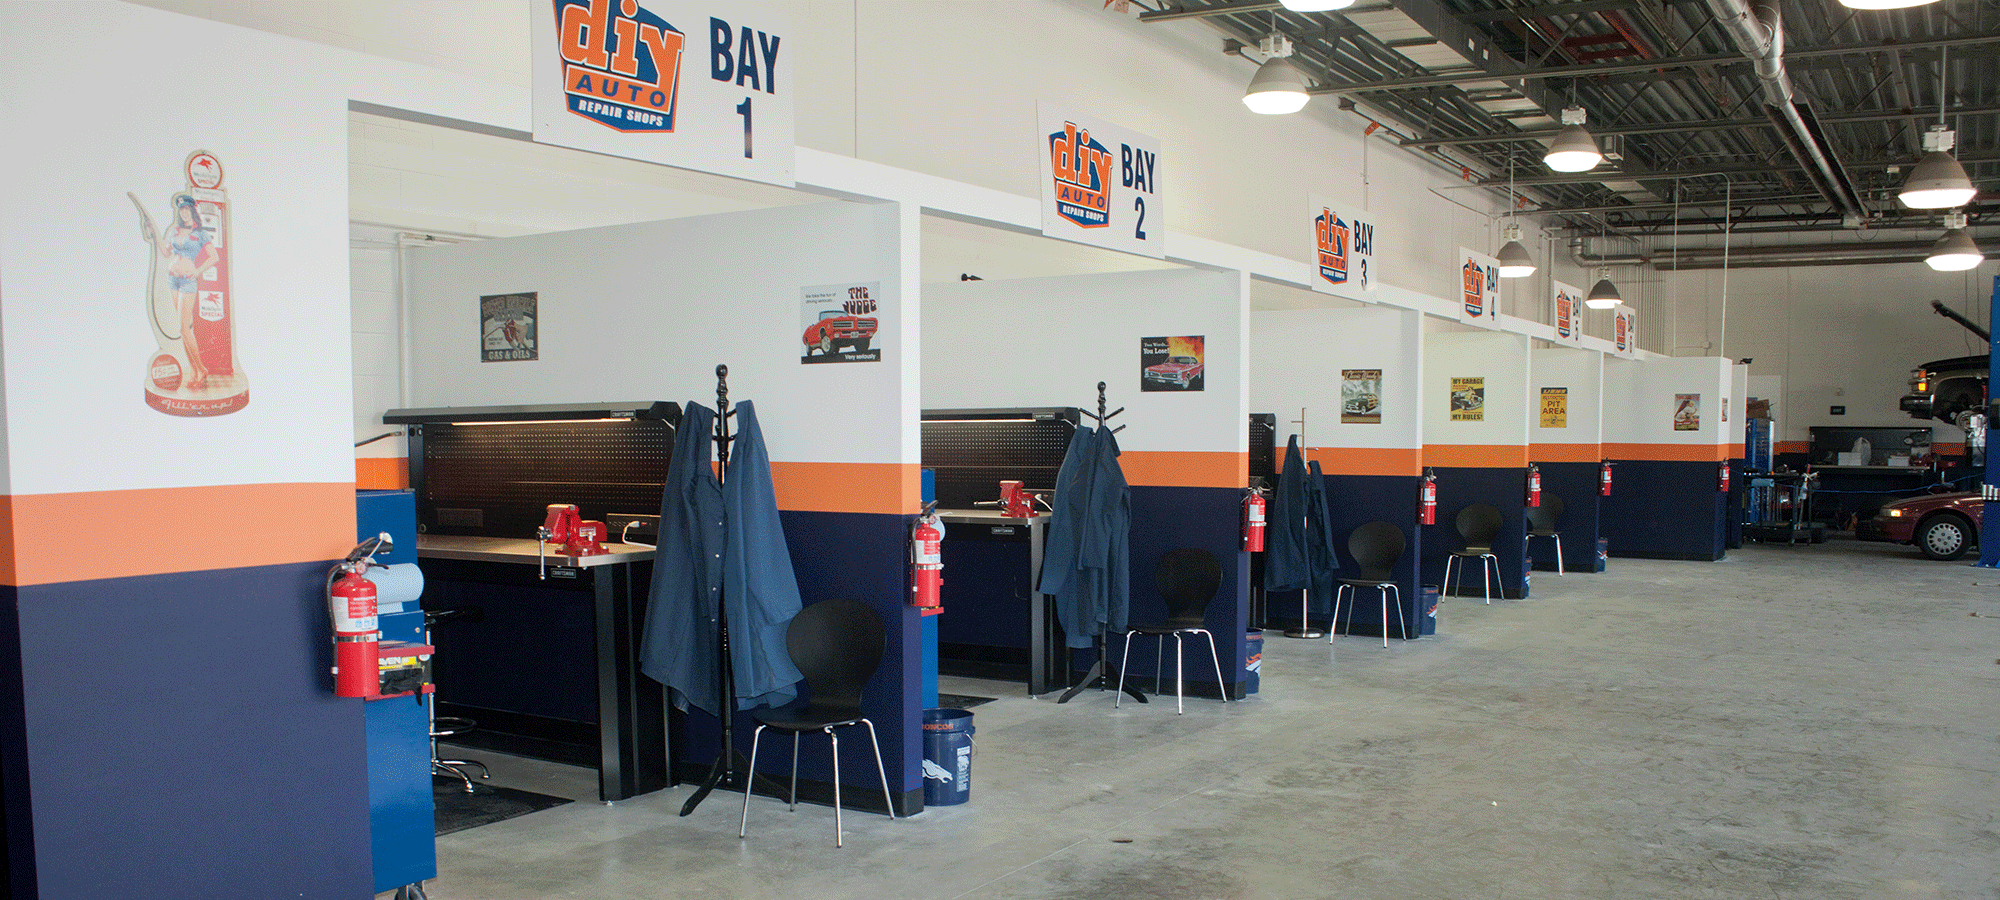 Diy auto repair shops equipped self service garage bays open weekends solutioingenieria Gallery